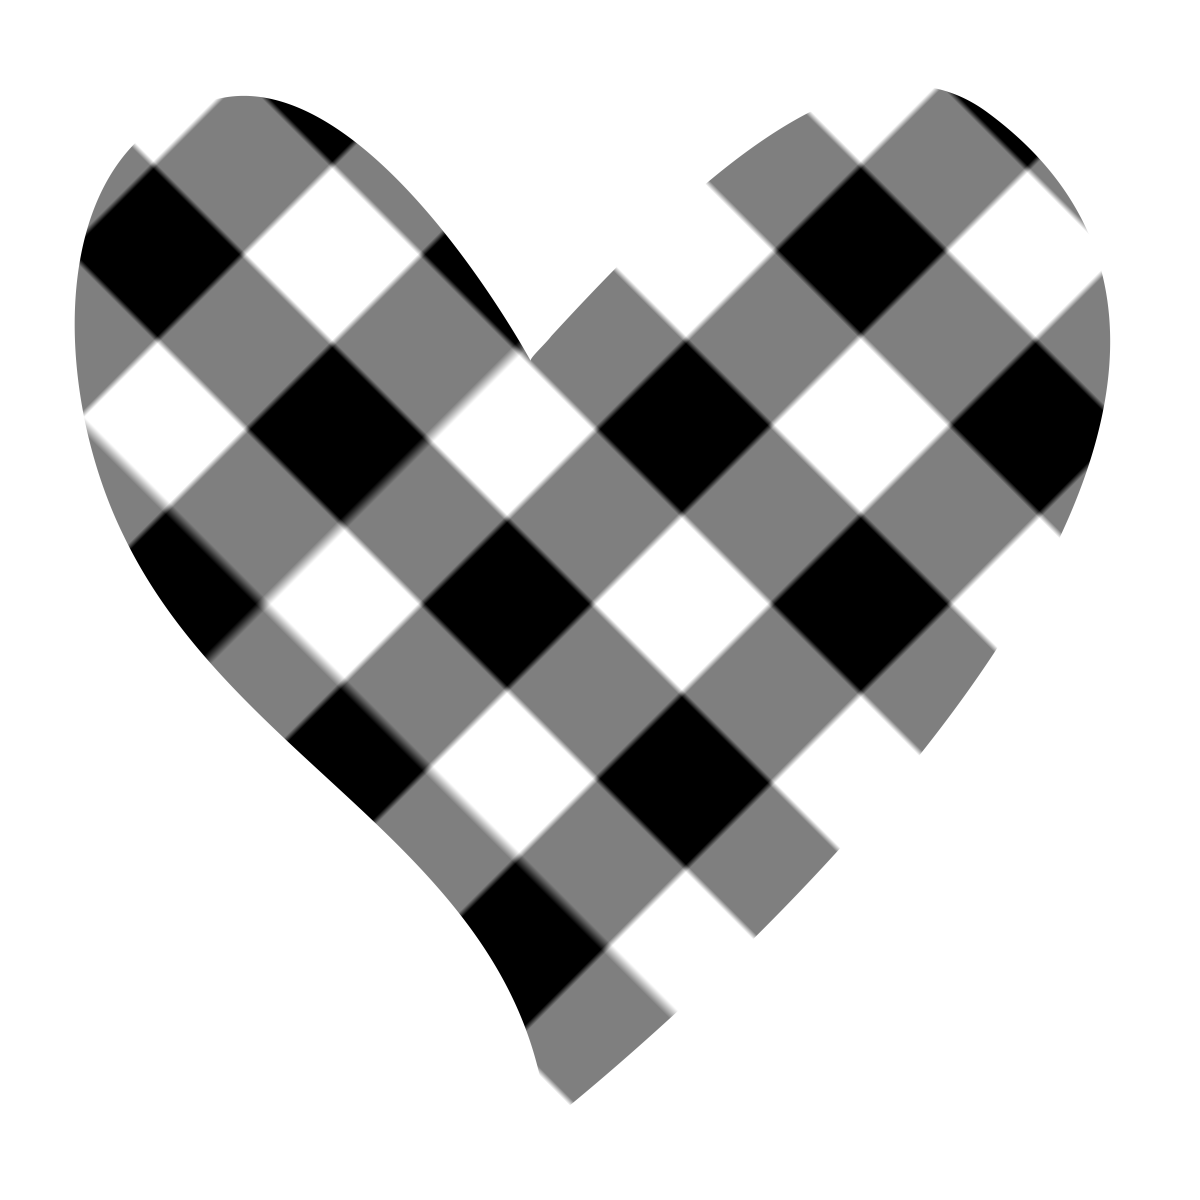 Heart-shaped clipart simple #6